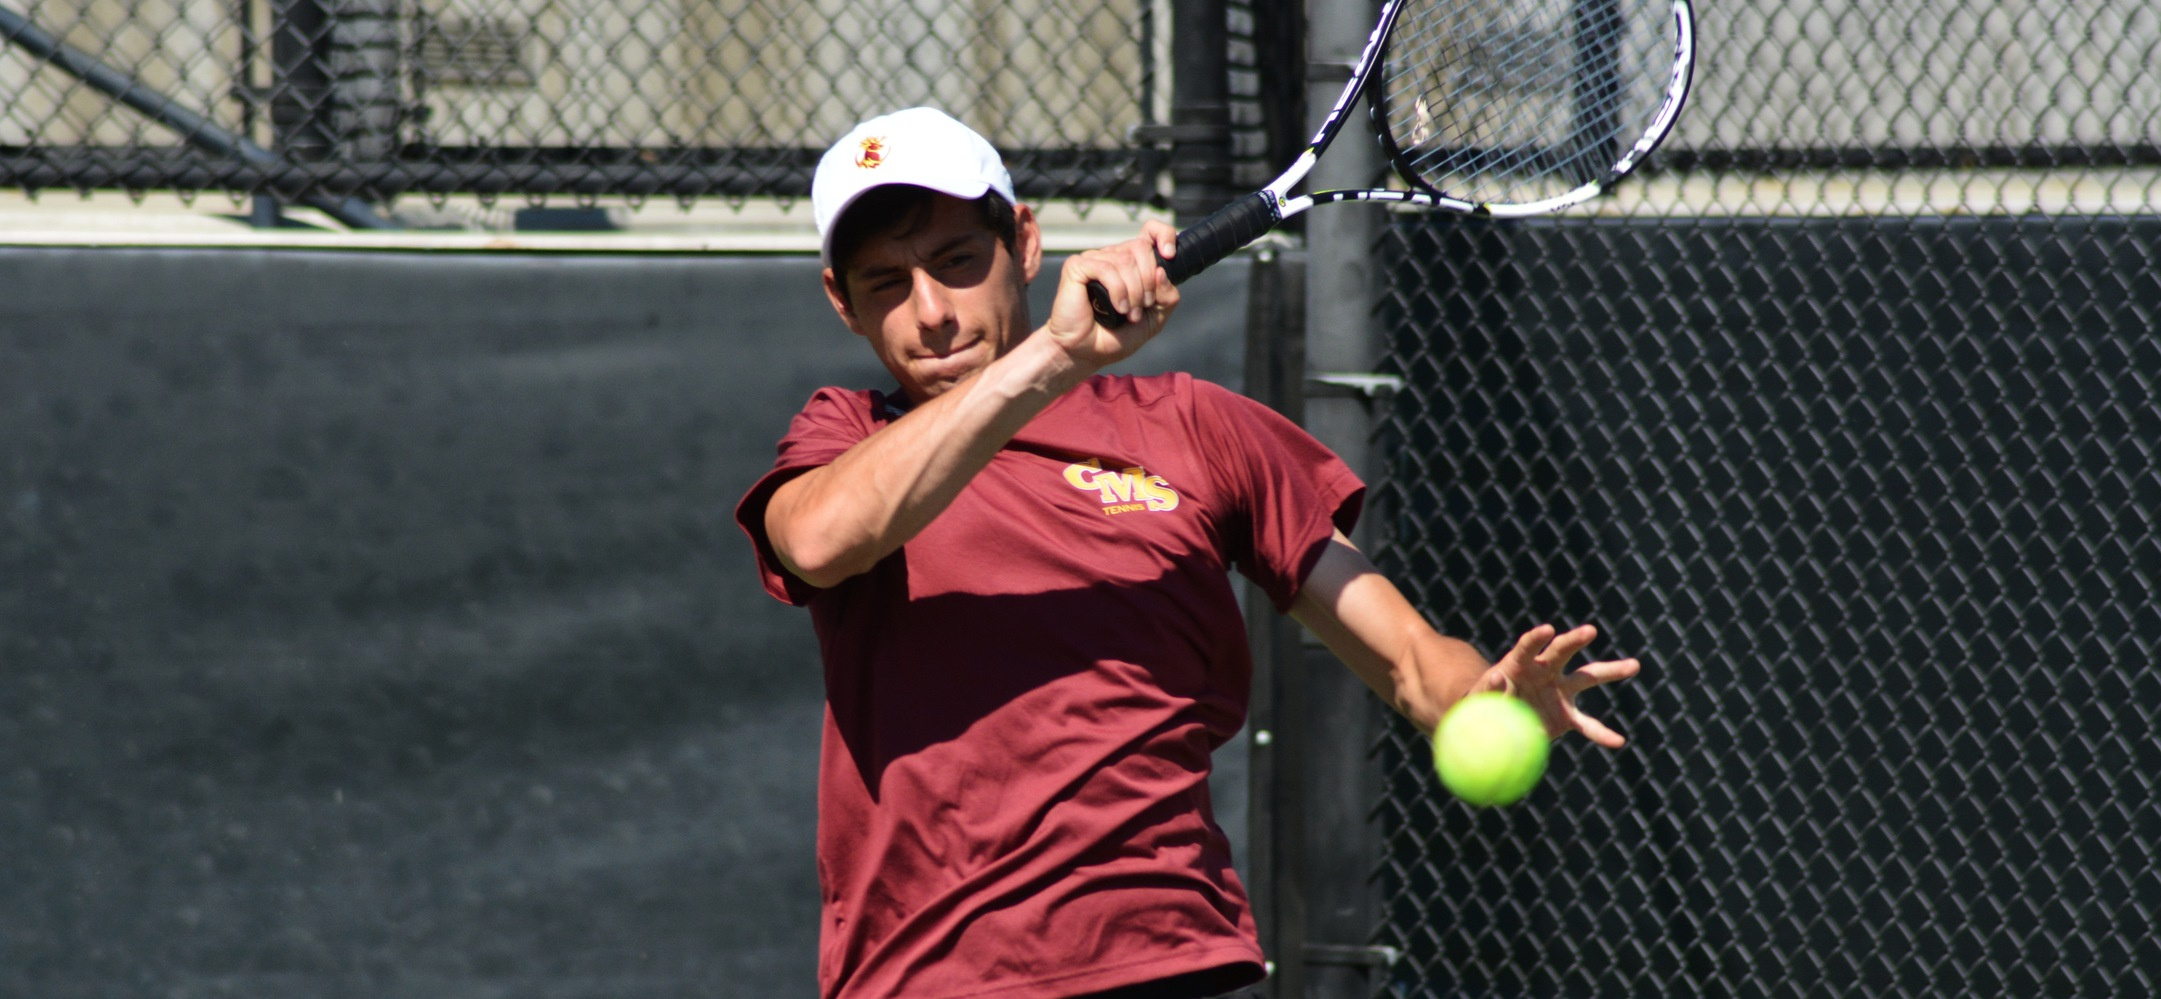 Senior Freddie Simental (CMC) won three matches on Saturday in CMS' shutouts of Occidental and Marymount California